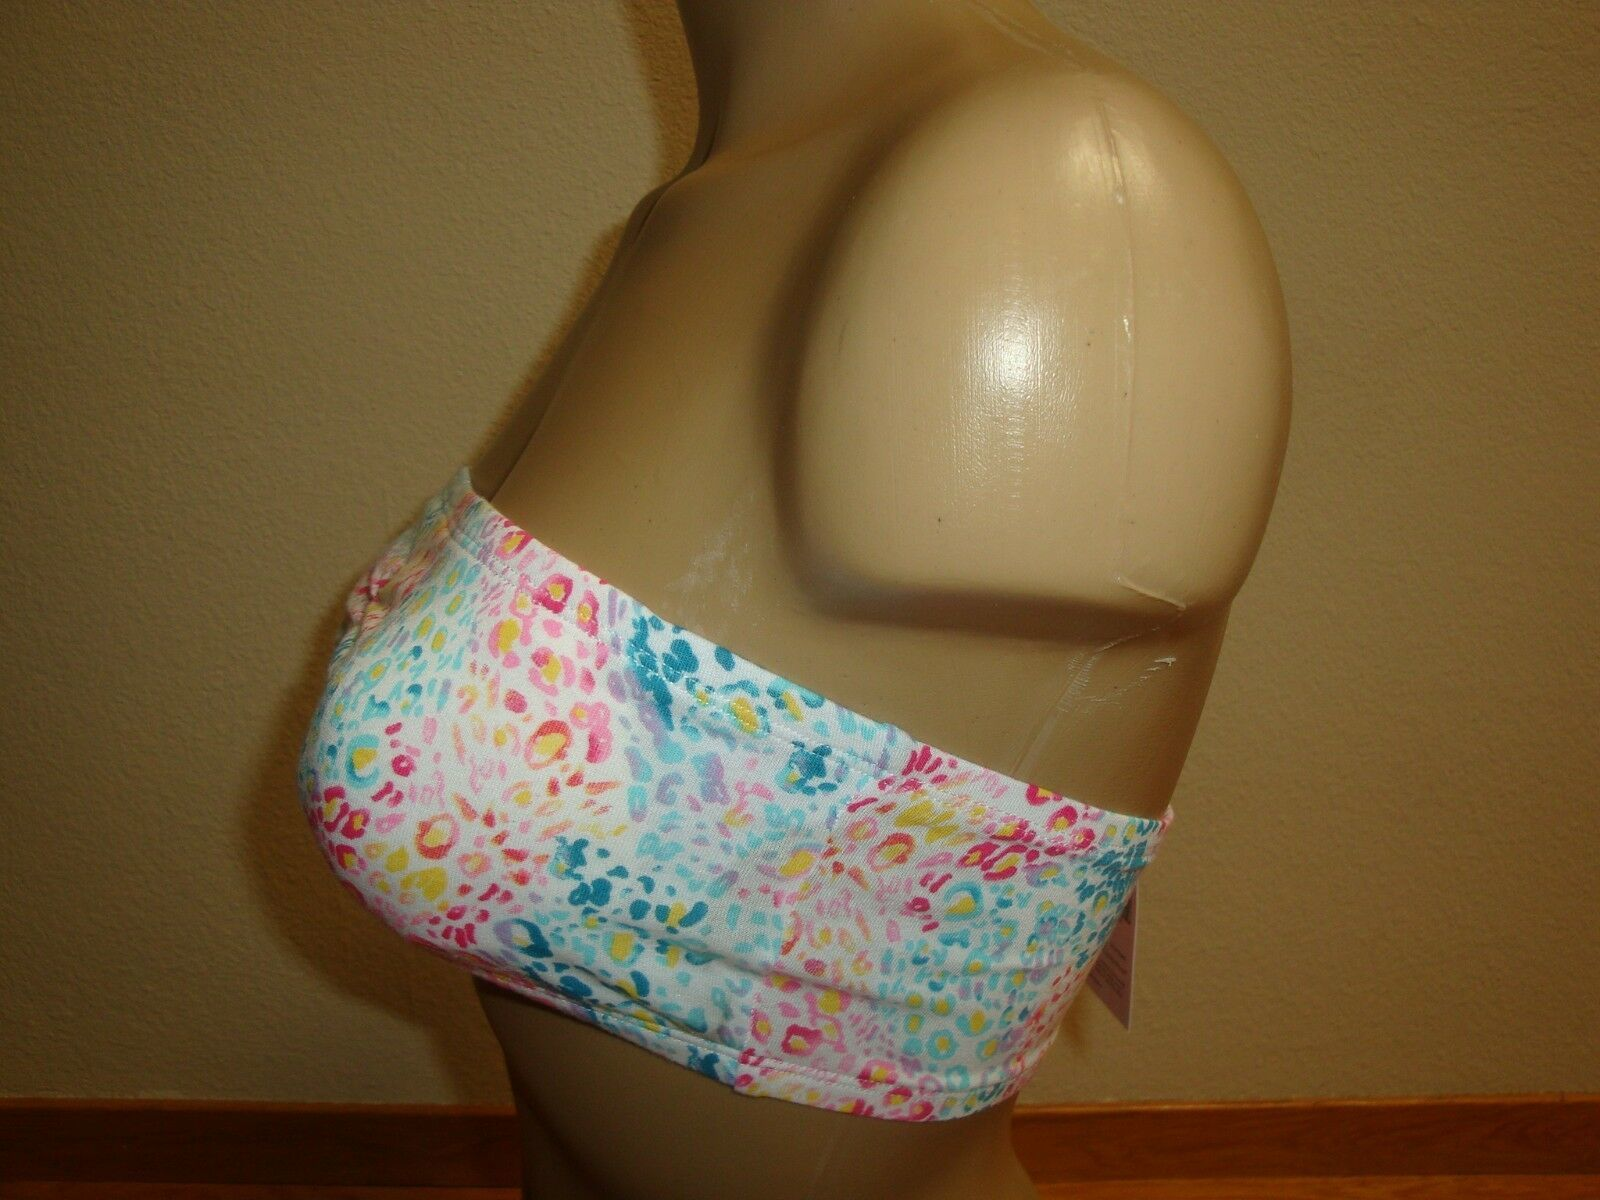 New Style Solutions by Fashion Forms Cotton Bandeau Wire Free Bra Rainbow M image 2